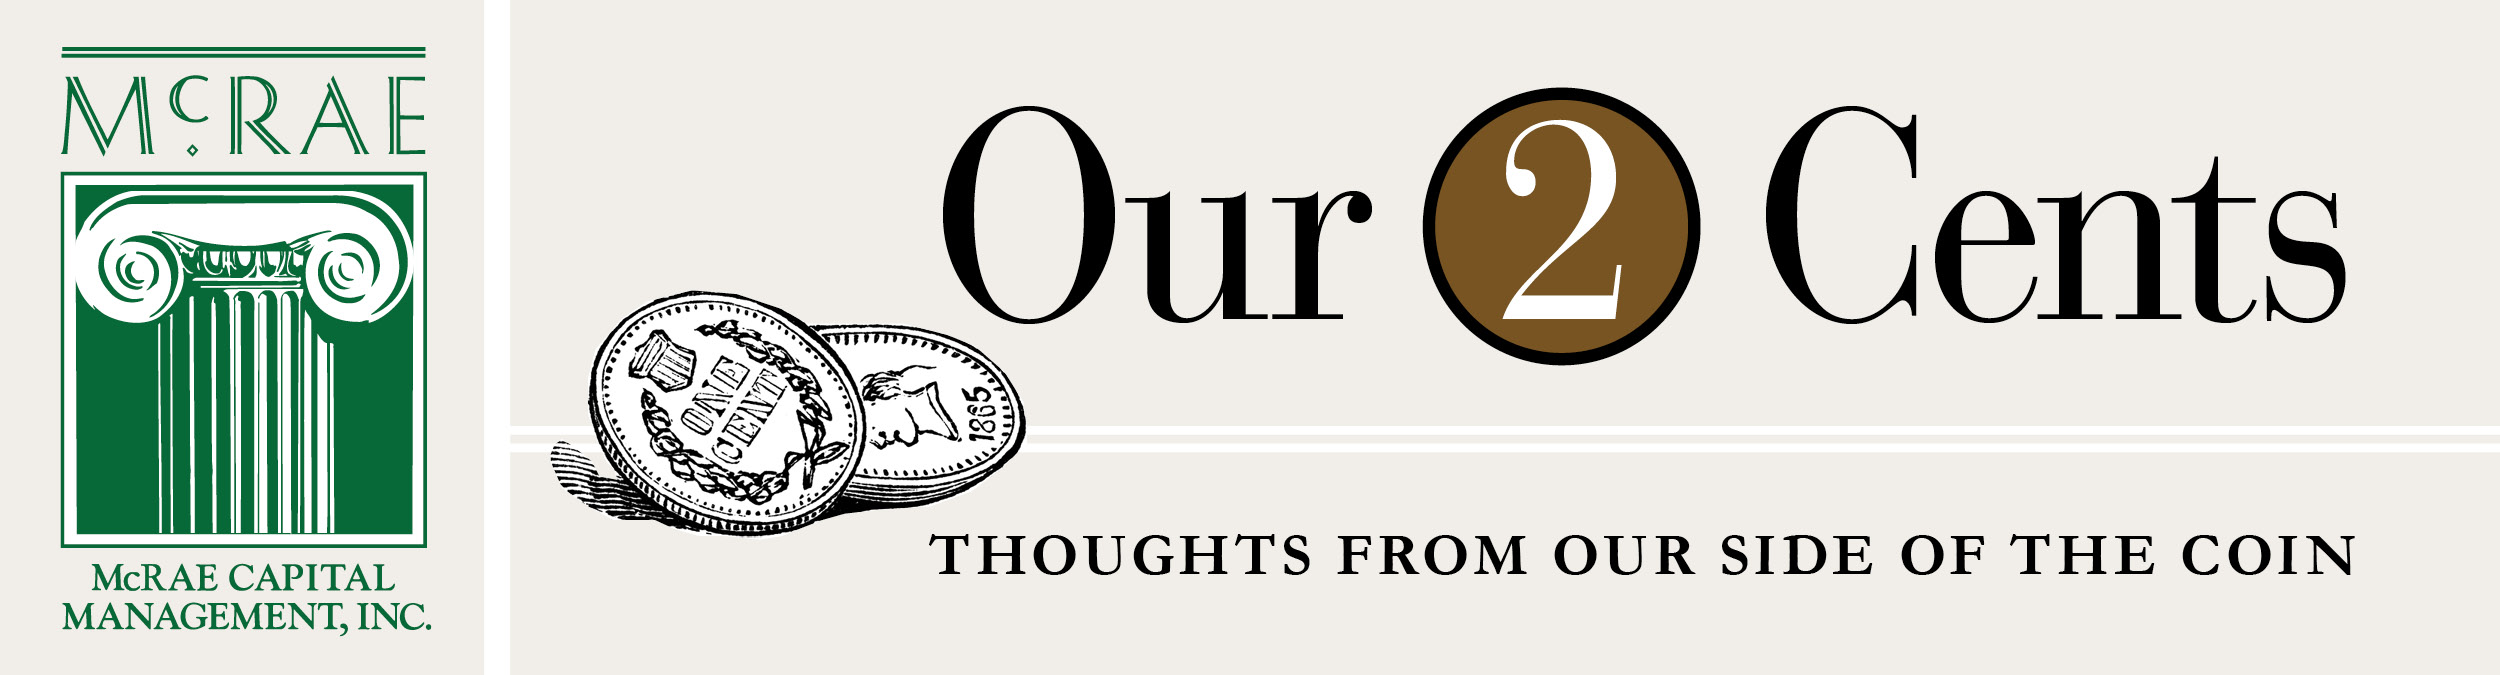 Our 2 Cents Logo